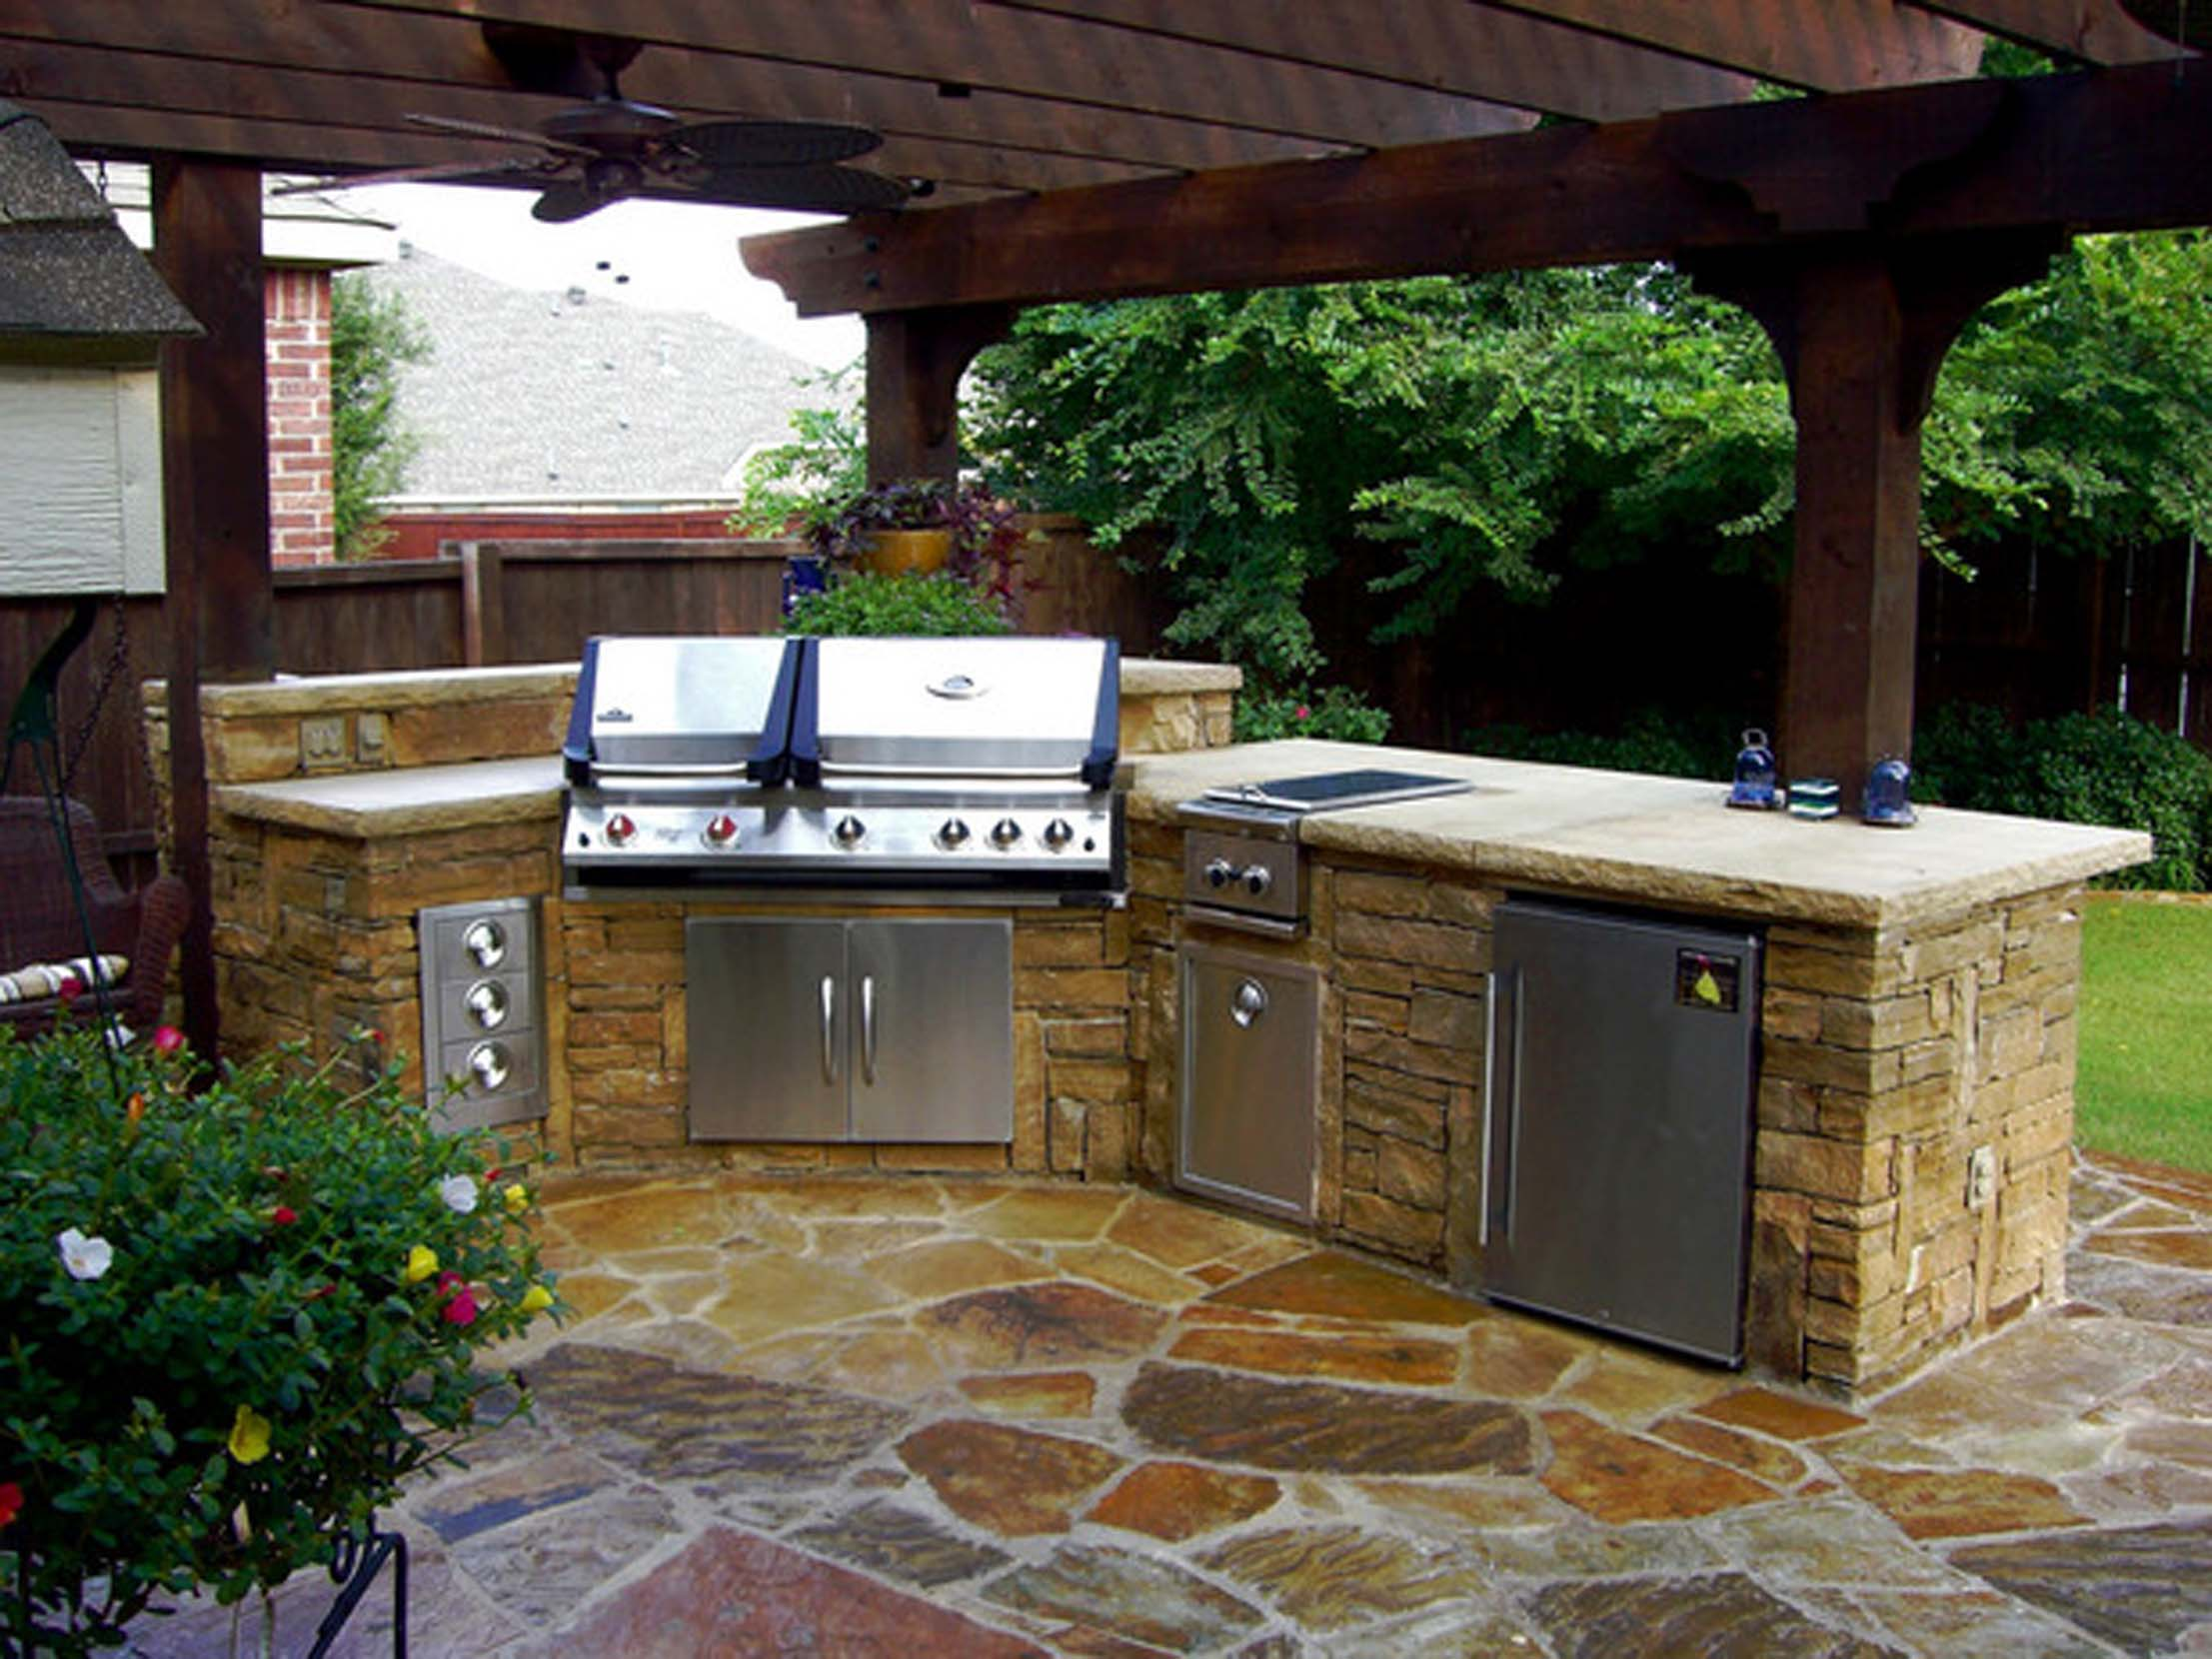 DP_burt-stone-outdoor-kitchen_s4x3_lg